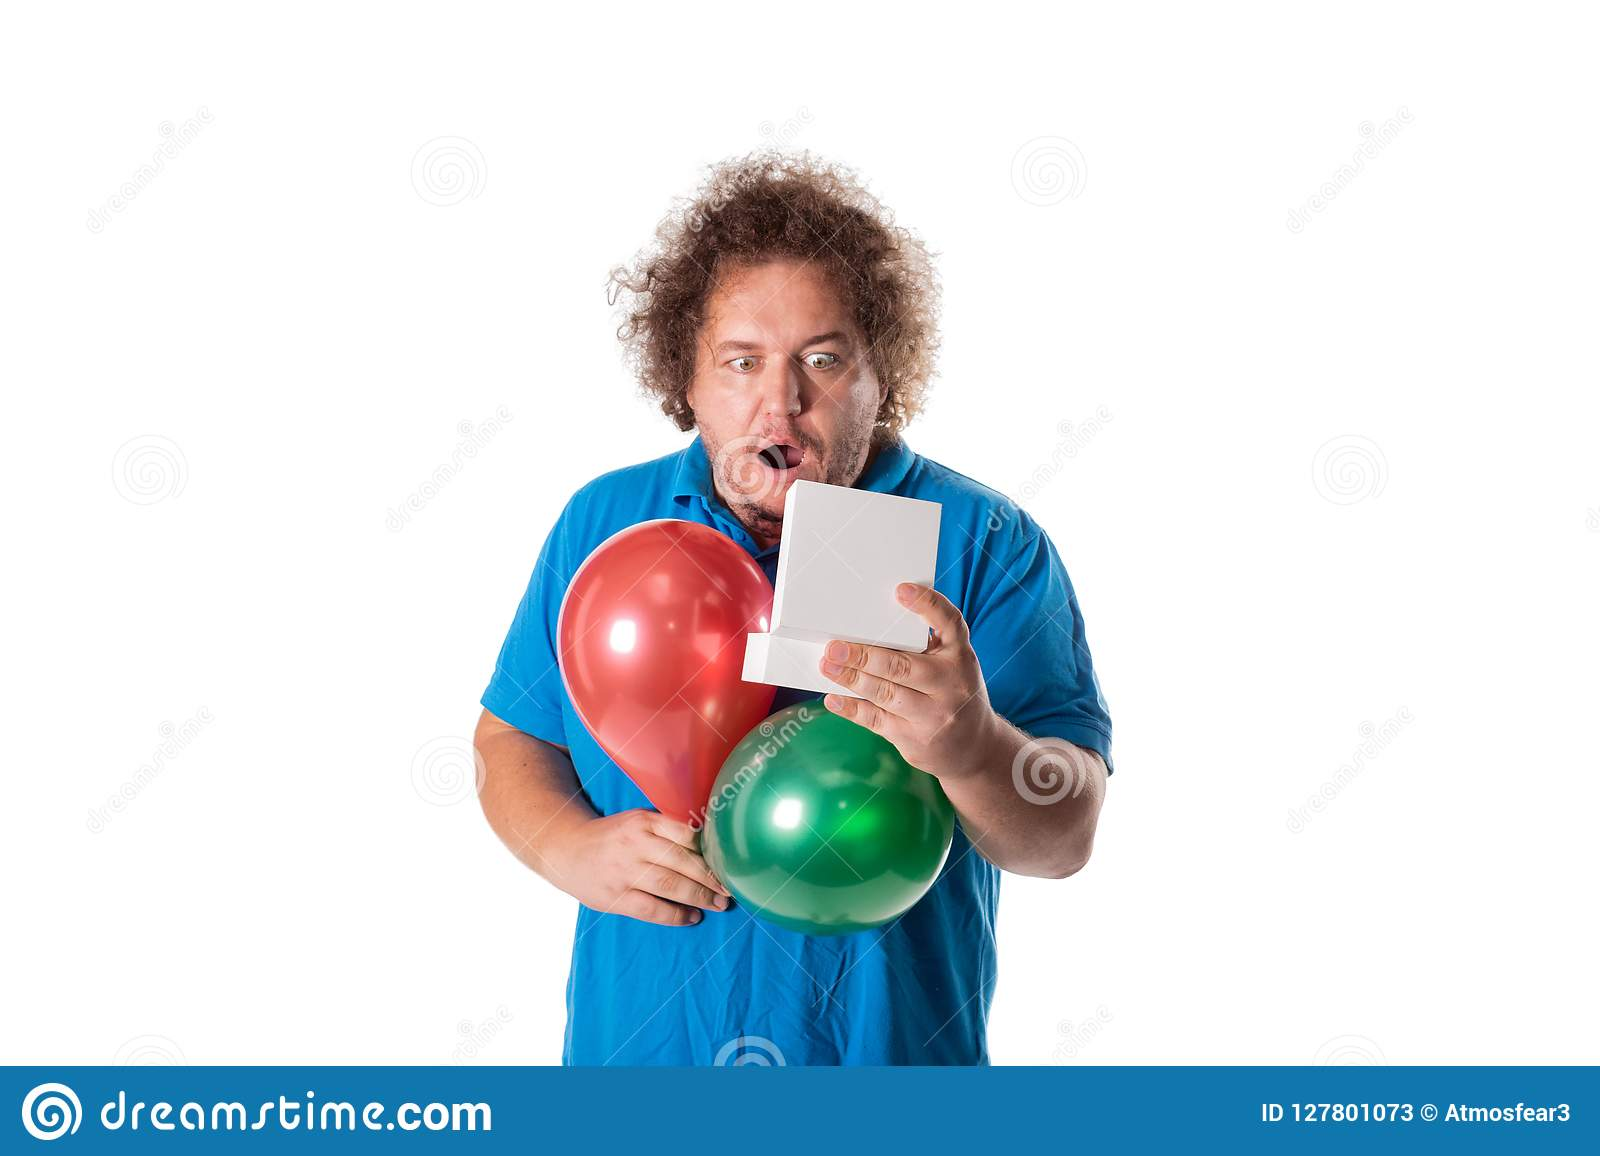 Funny fat man with gift and balloons. Happy birthday